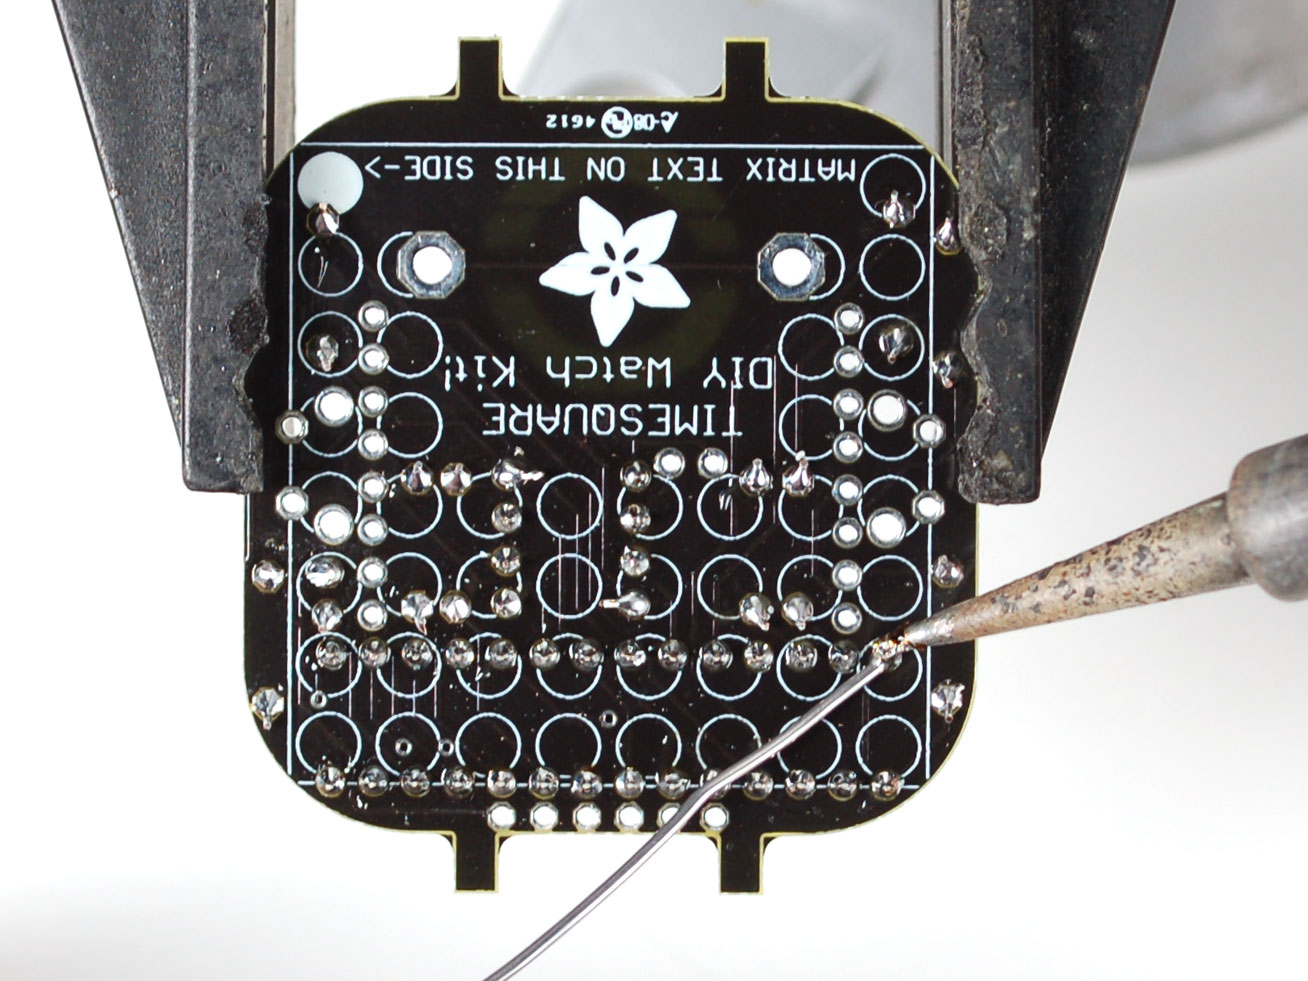 adafruit_products_chipsolder3.jpg